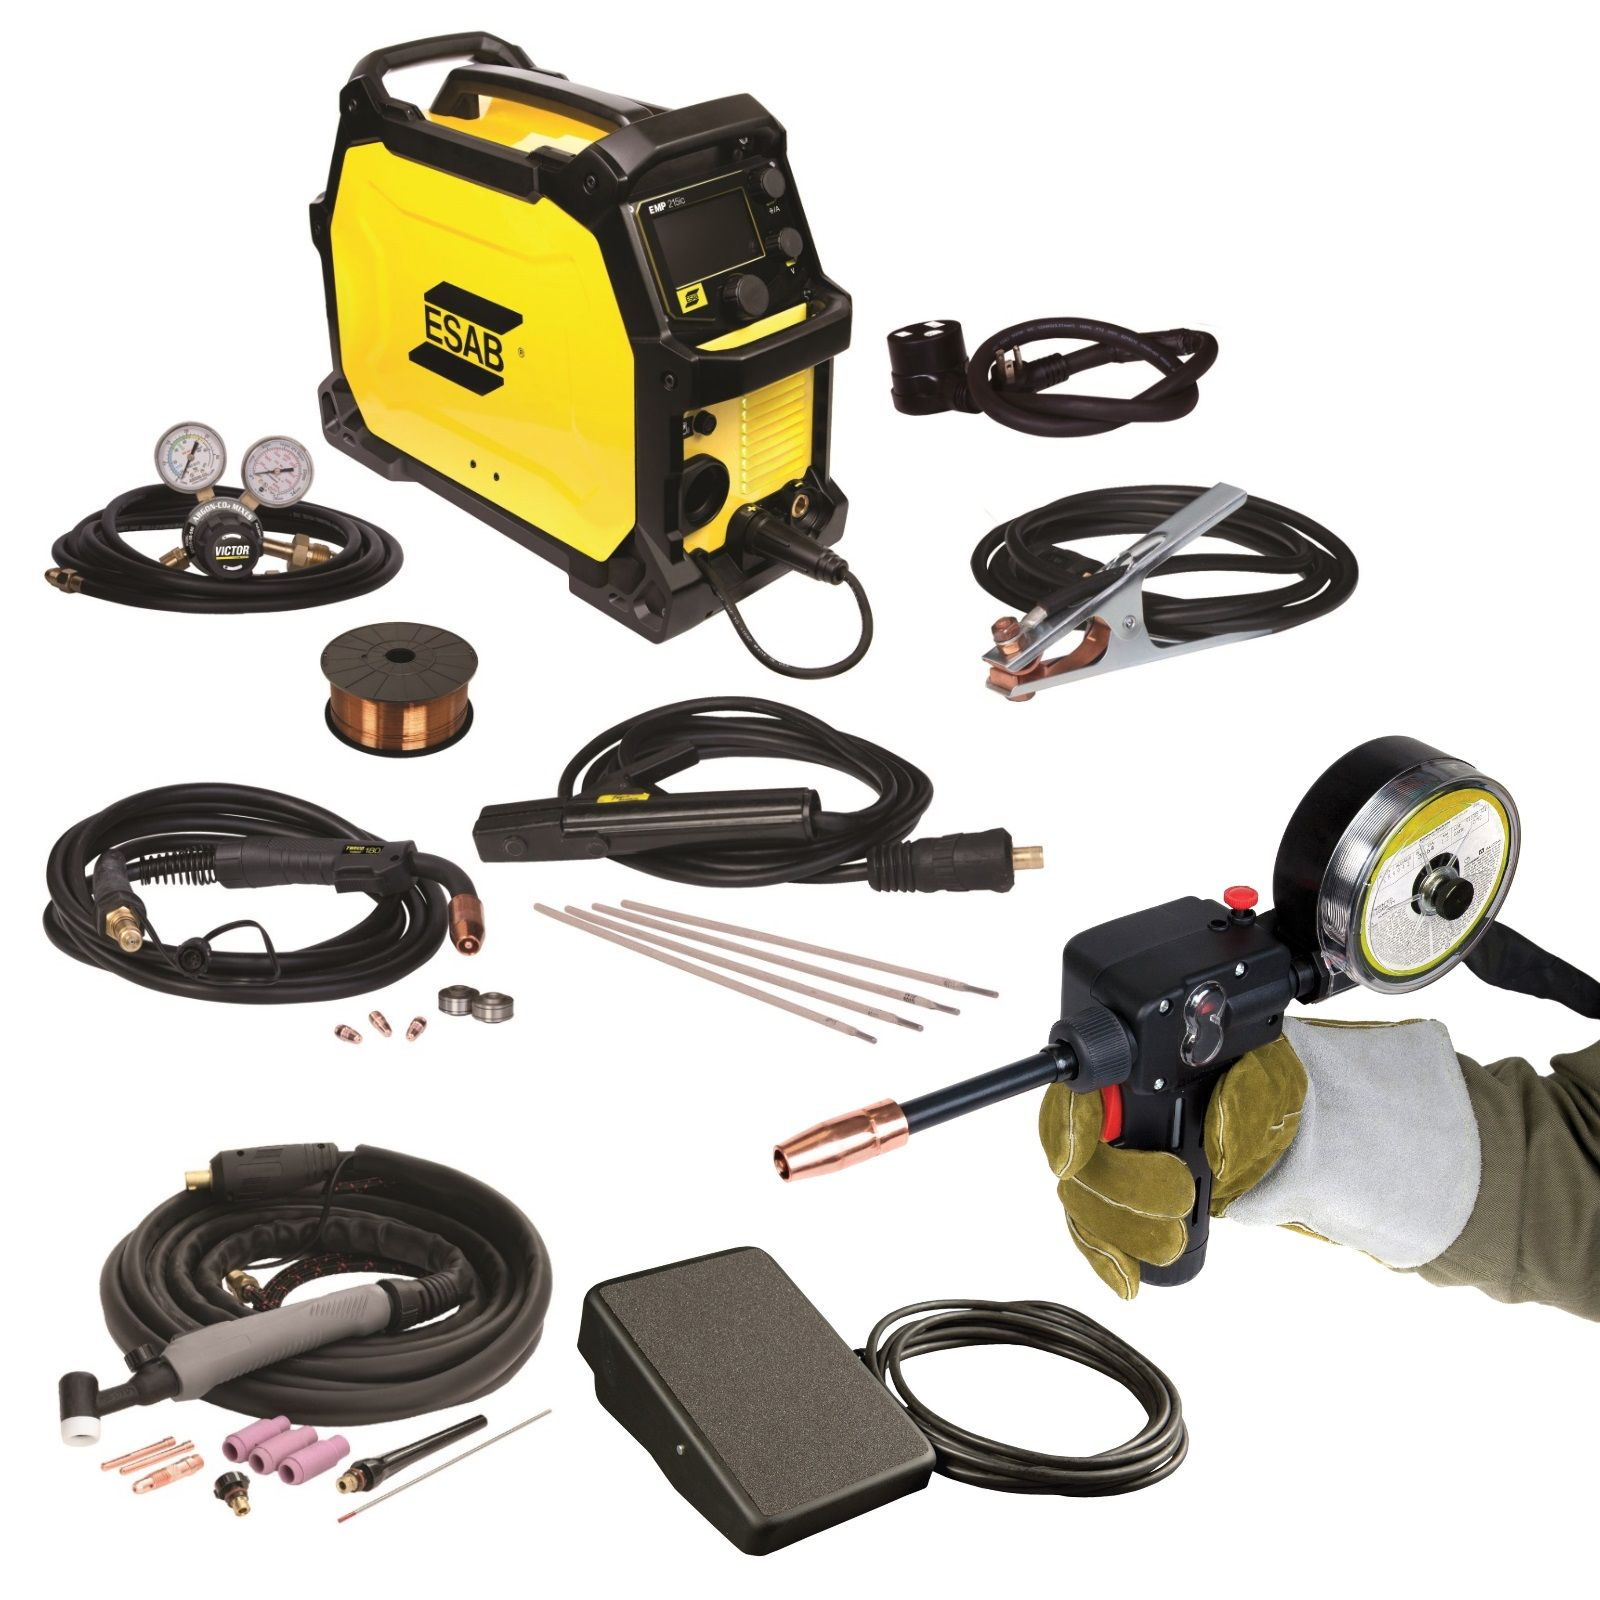 ESAB Rebel EMP 215ic Welder with Spoolgun and Foot Control (0558102240)